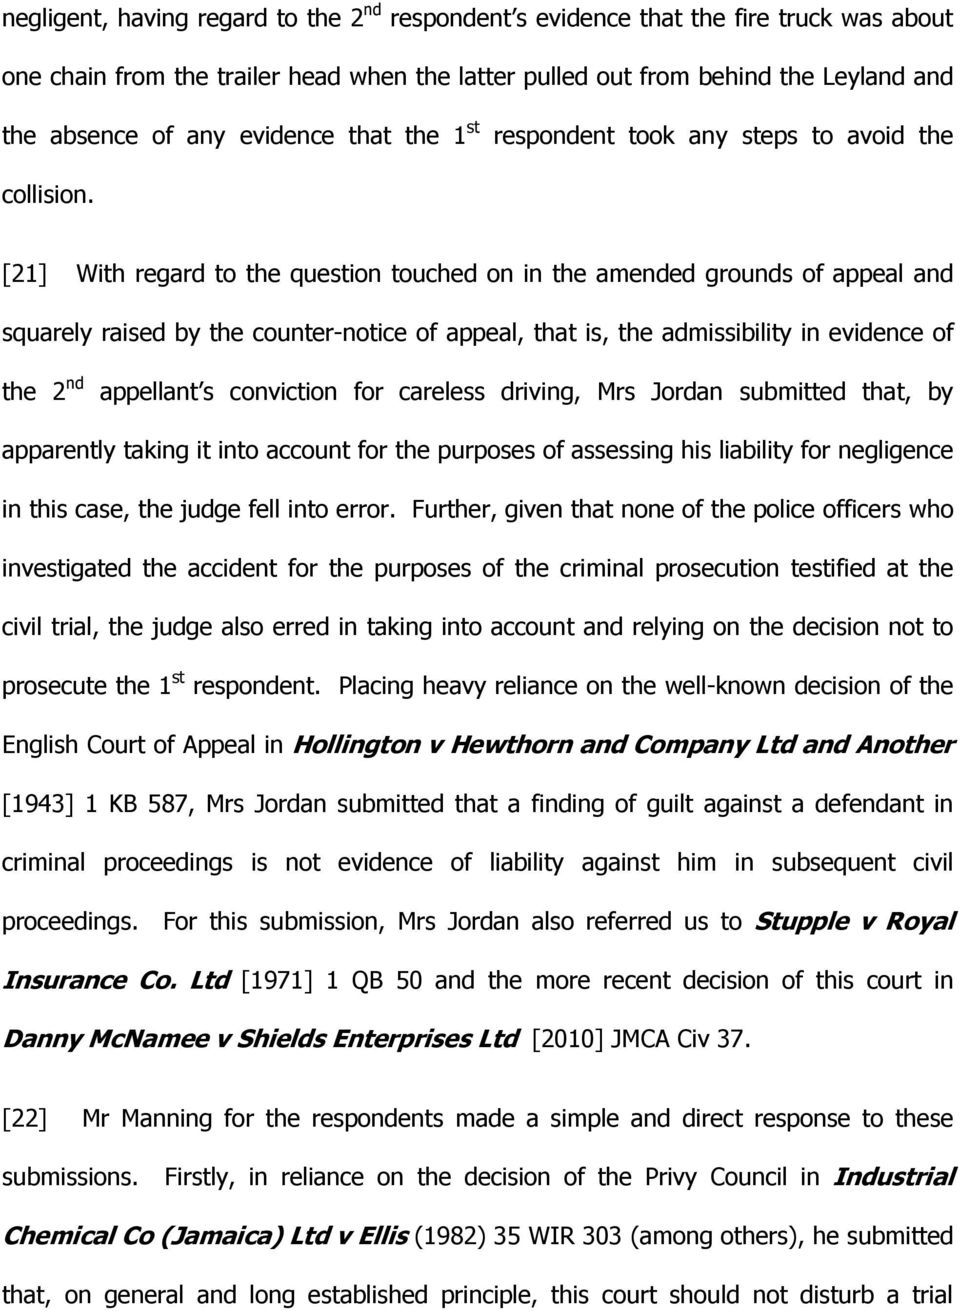 [21] With regard to the question touched on in the amended grounds of appeal and squarely raised by the counter-notice of appeal, that is, the admissibility in evidence of the 2 nd appellant s